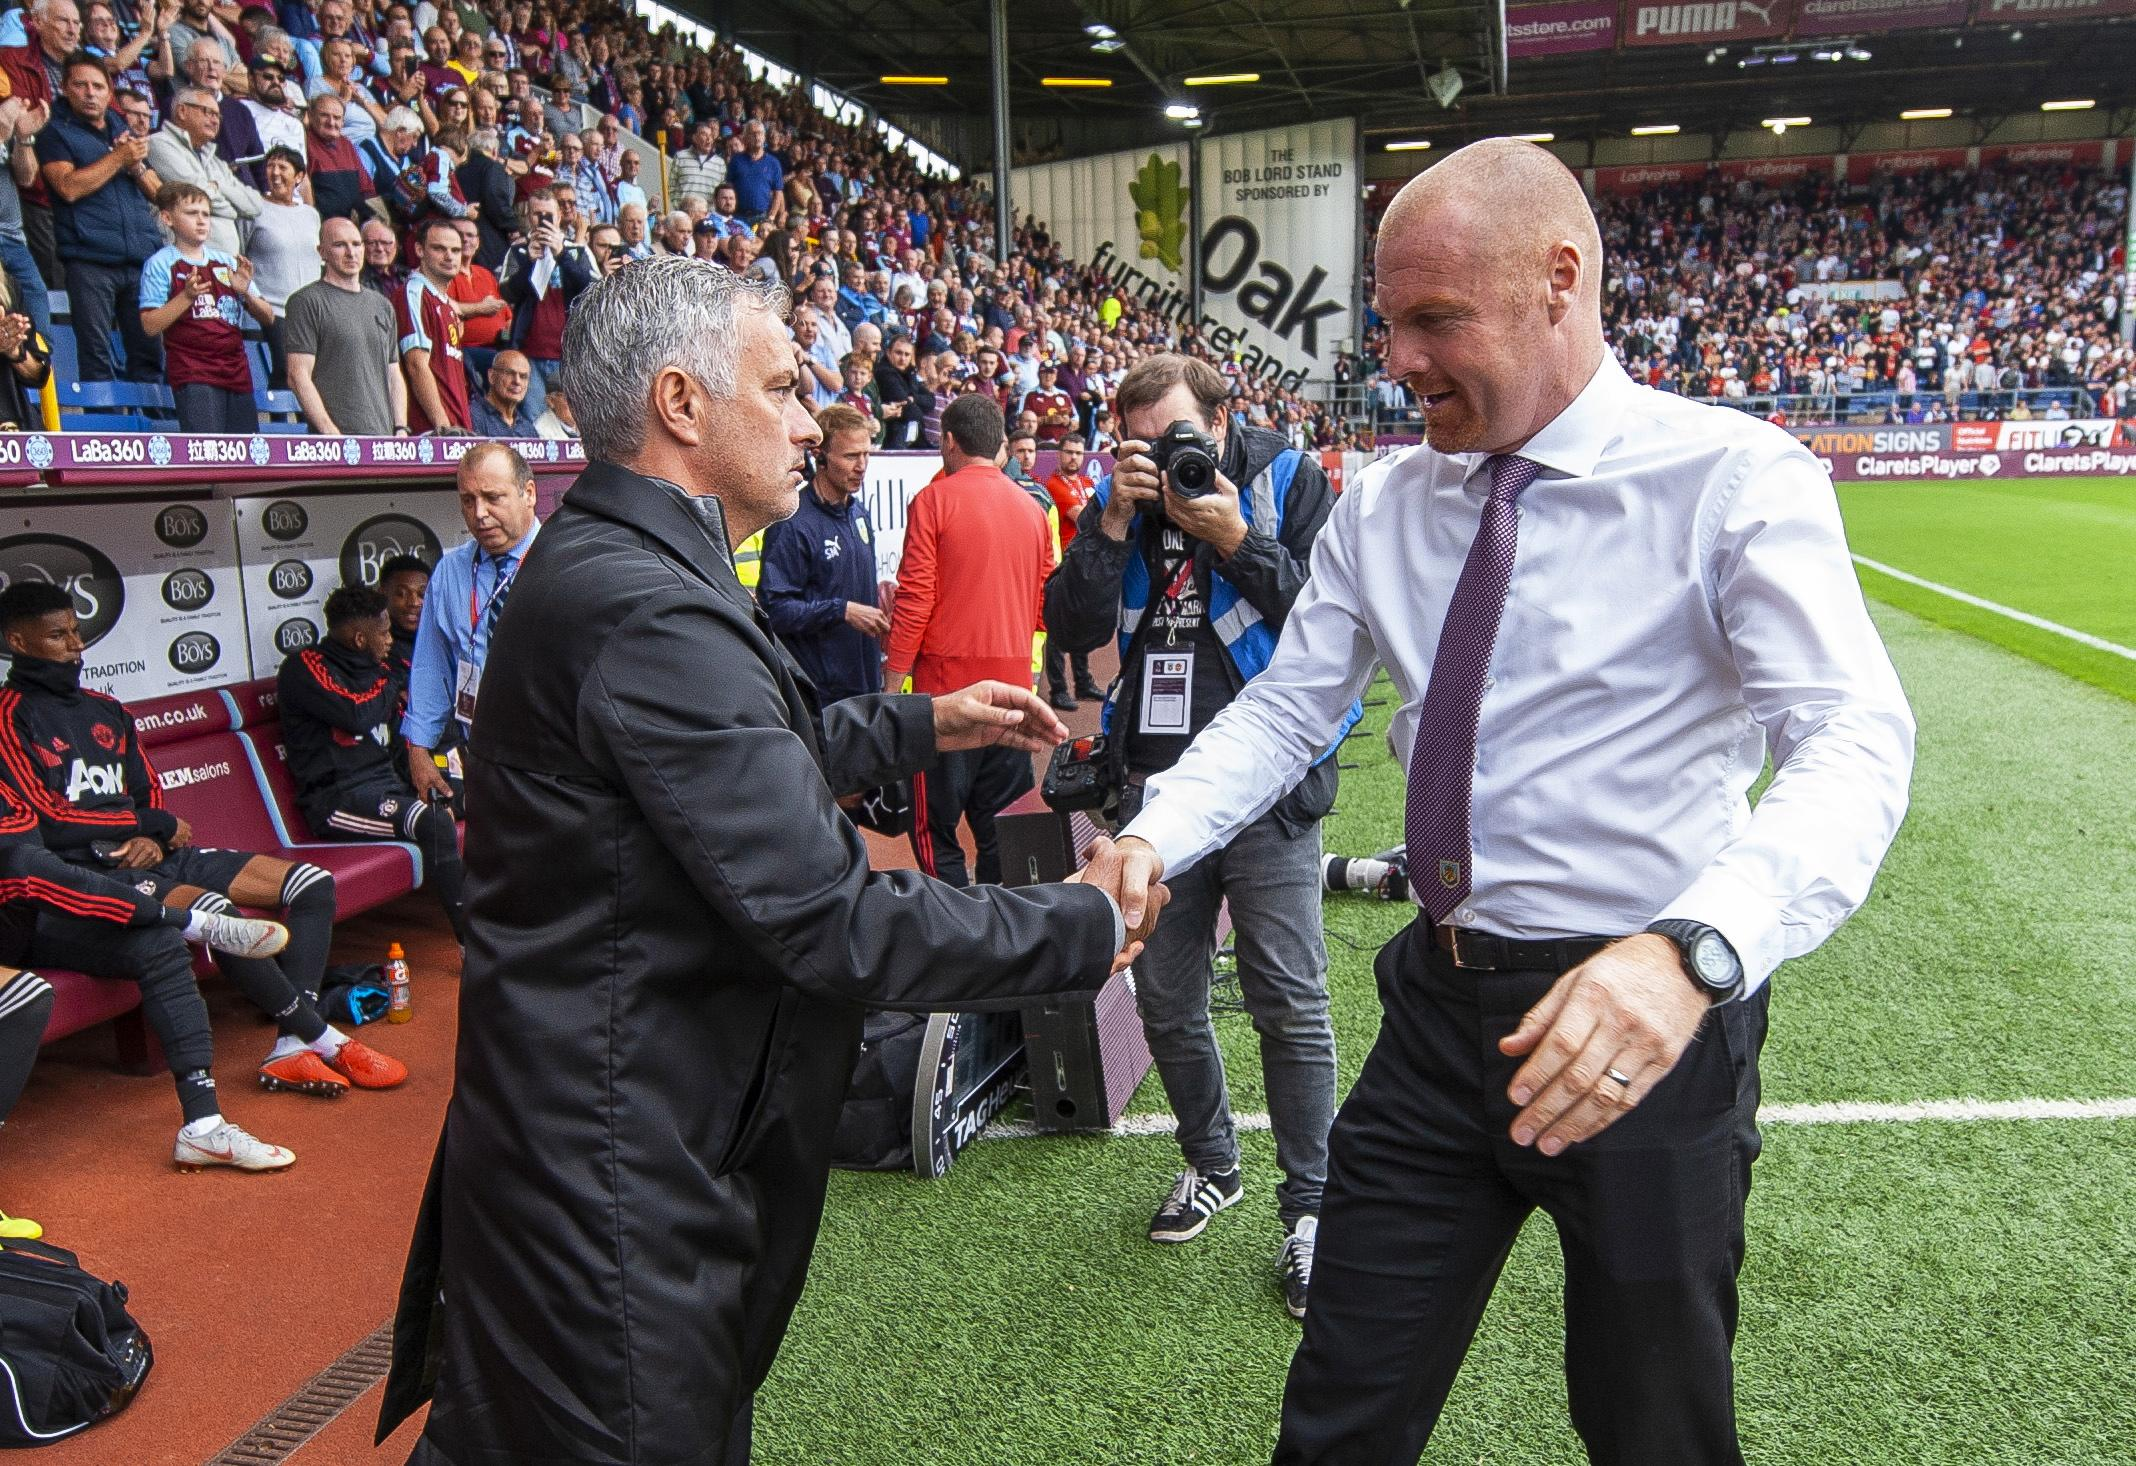 Jose Mourinho embraces opposite number Sean Dyche before kick off